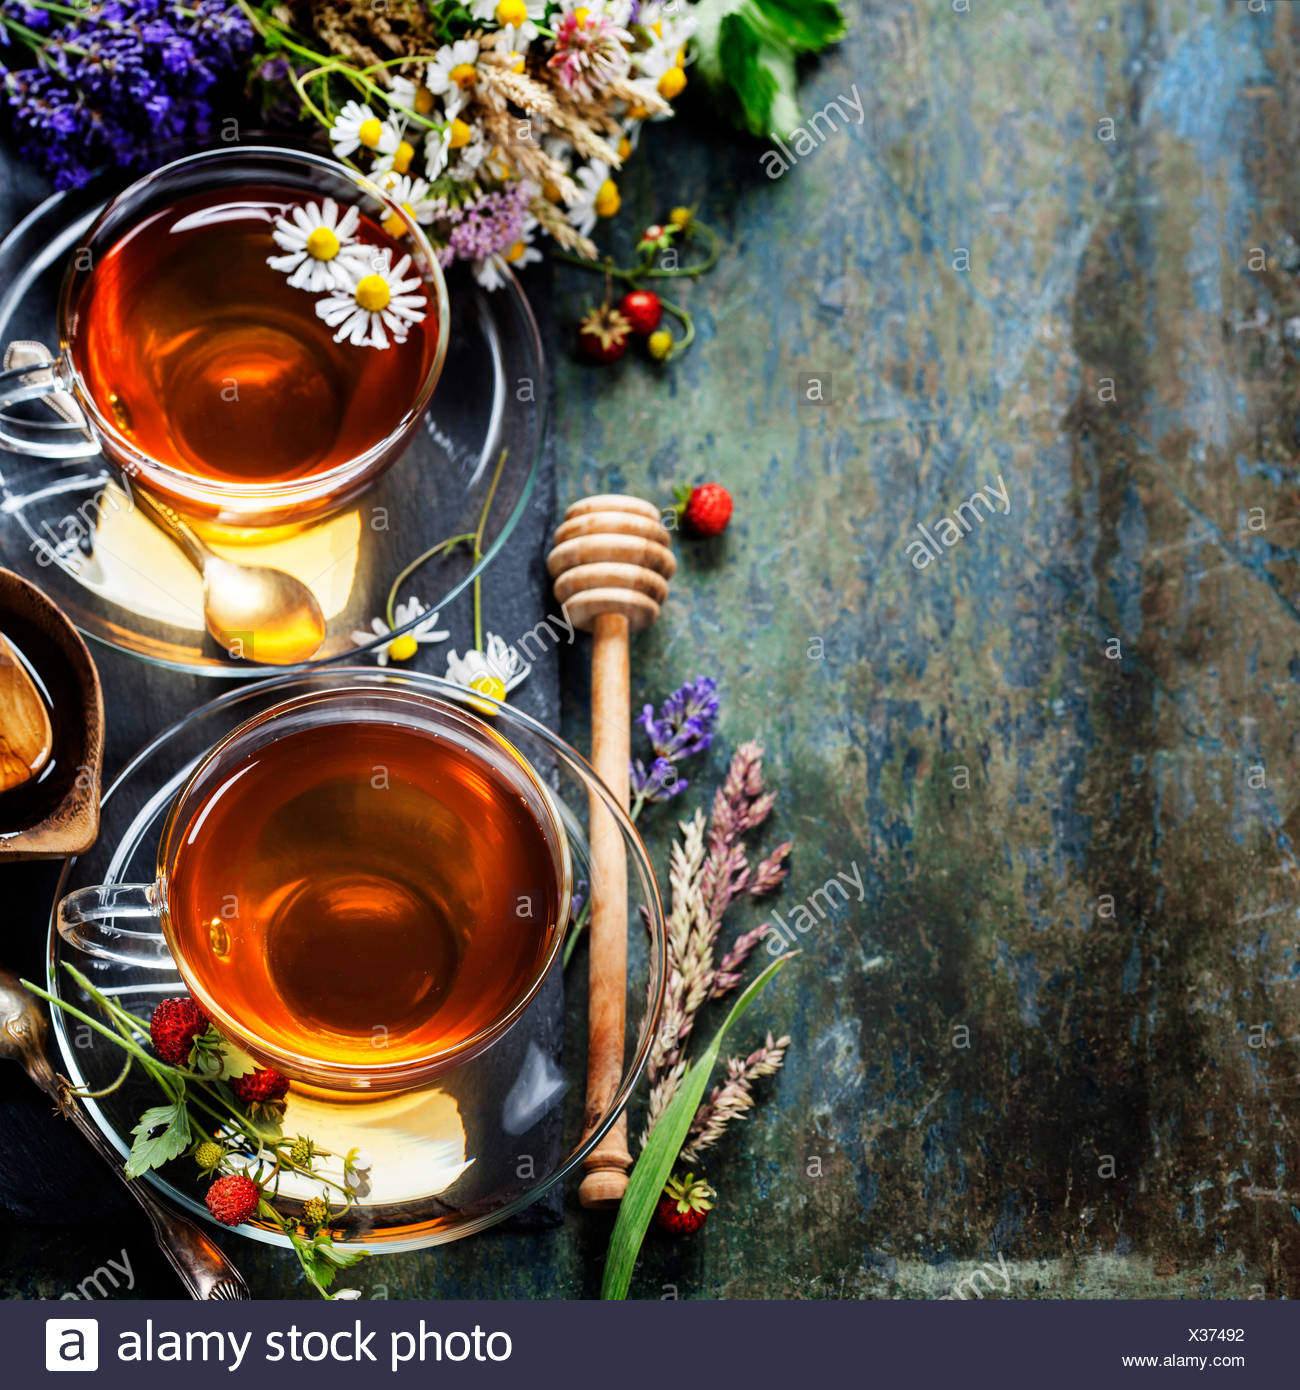 Herbal tea with honey, wild berry and flowers on wooden background - Stock Image